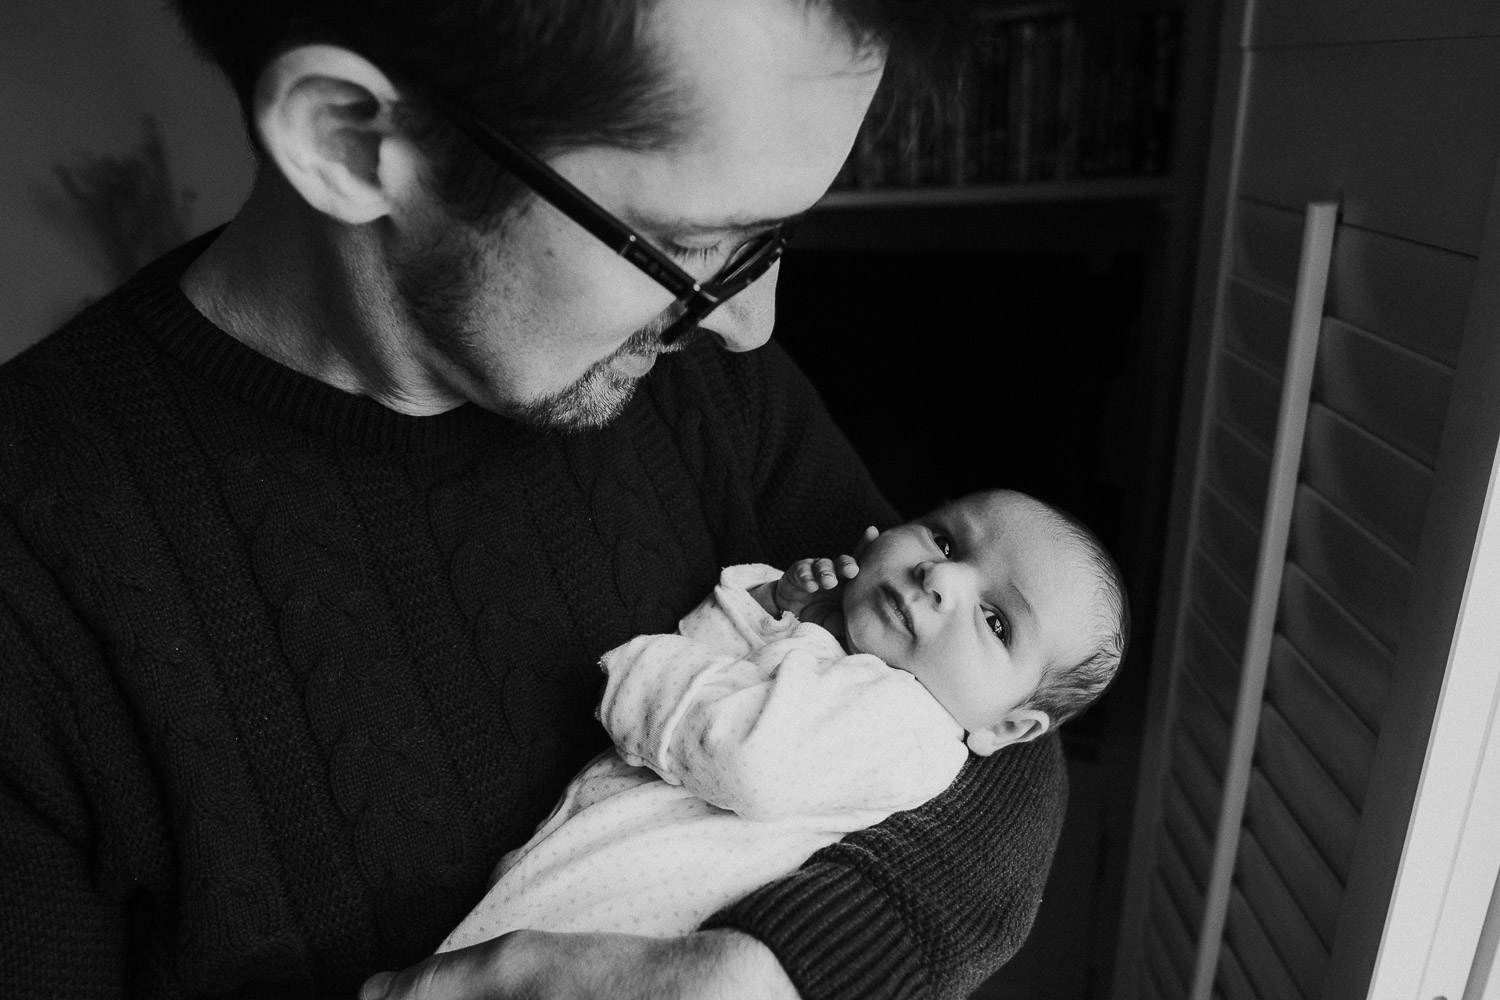 tunbridge wells baby photographer father holding newborn black and white